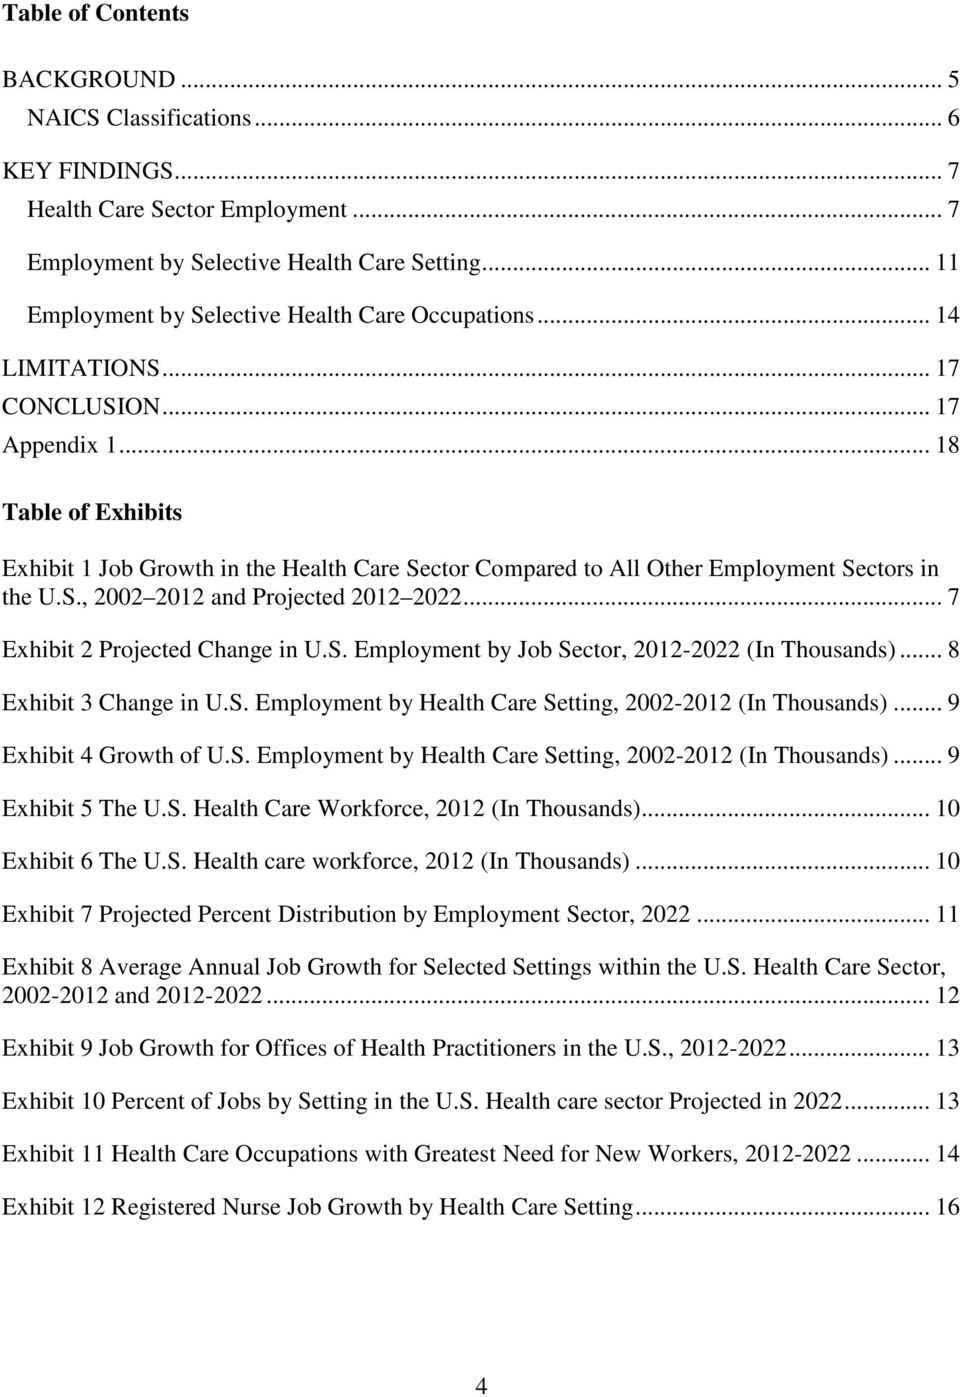 .. 18 Table of Exhibits Exhibit 1 Job Growth in the Health Care Sector Compared to All Other Employment Sectors in the U.S., 2002 2012 and Projected 2012 2022... 7 Exhibit 2 Projected Change in U.S. Employment by Job Sector, 2012-2022 (In Thousands).